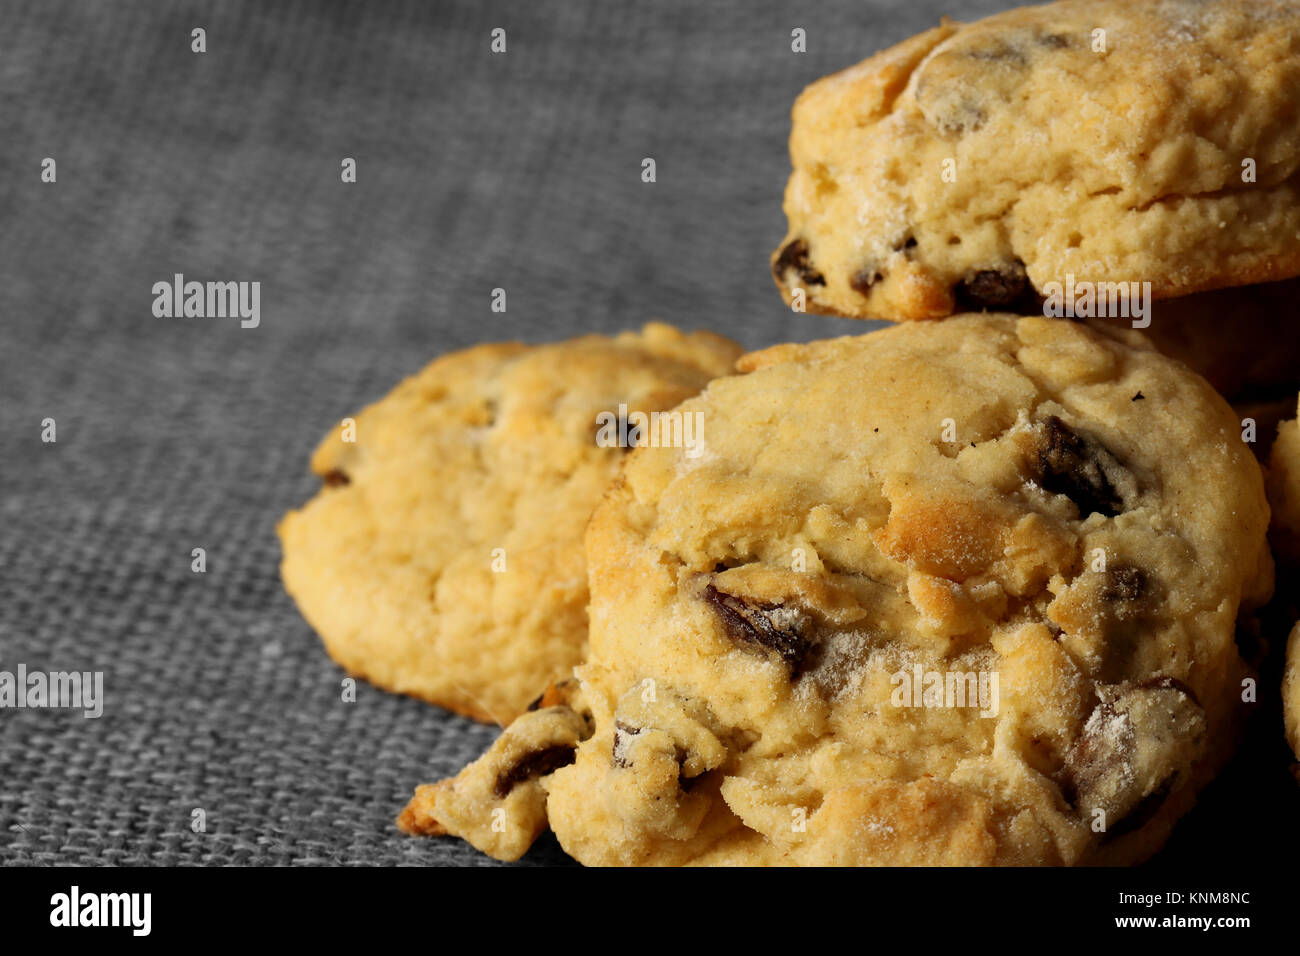 Homemade fruit scones on a hessian background - Stock Image